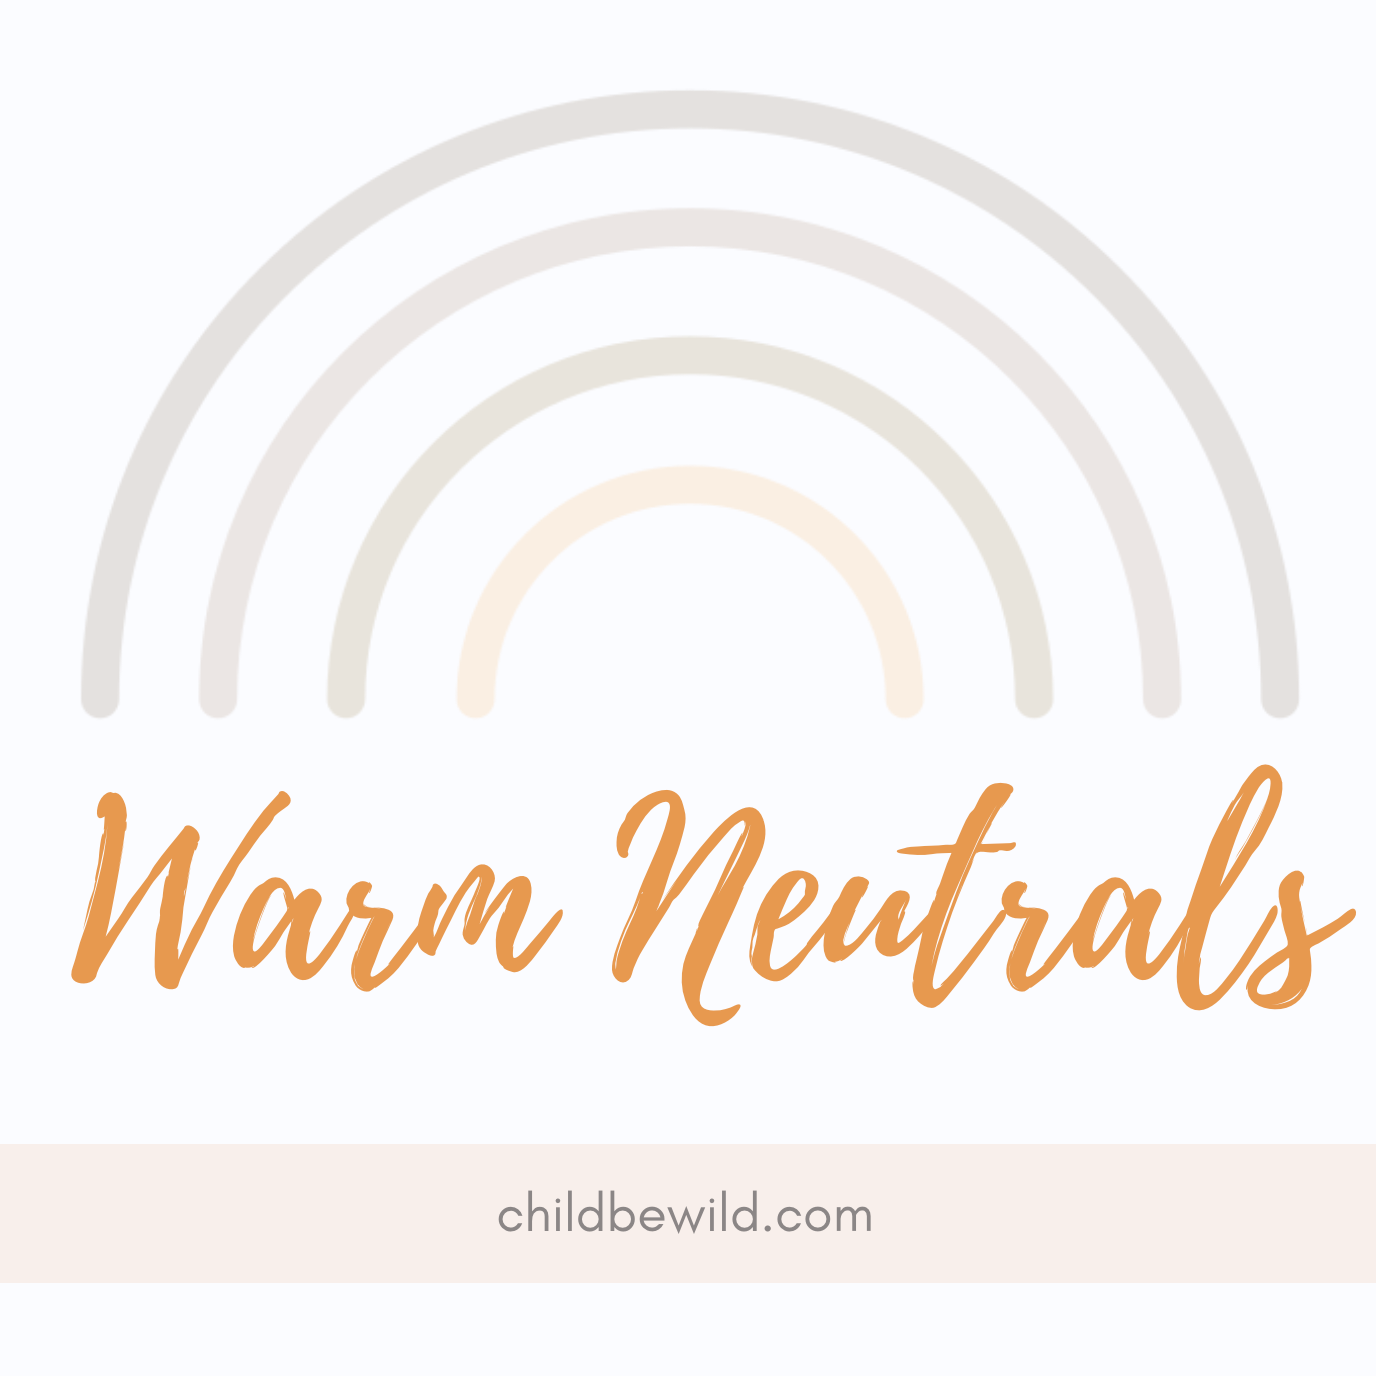 Warm Neutrals childbewild.com text below rainbow illustration in warm gray tones